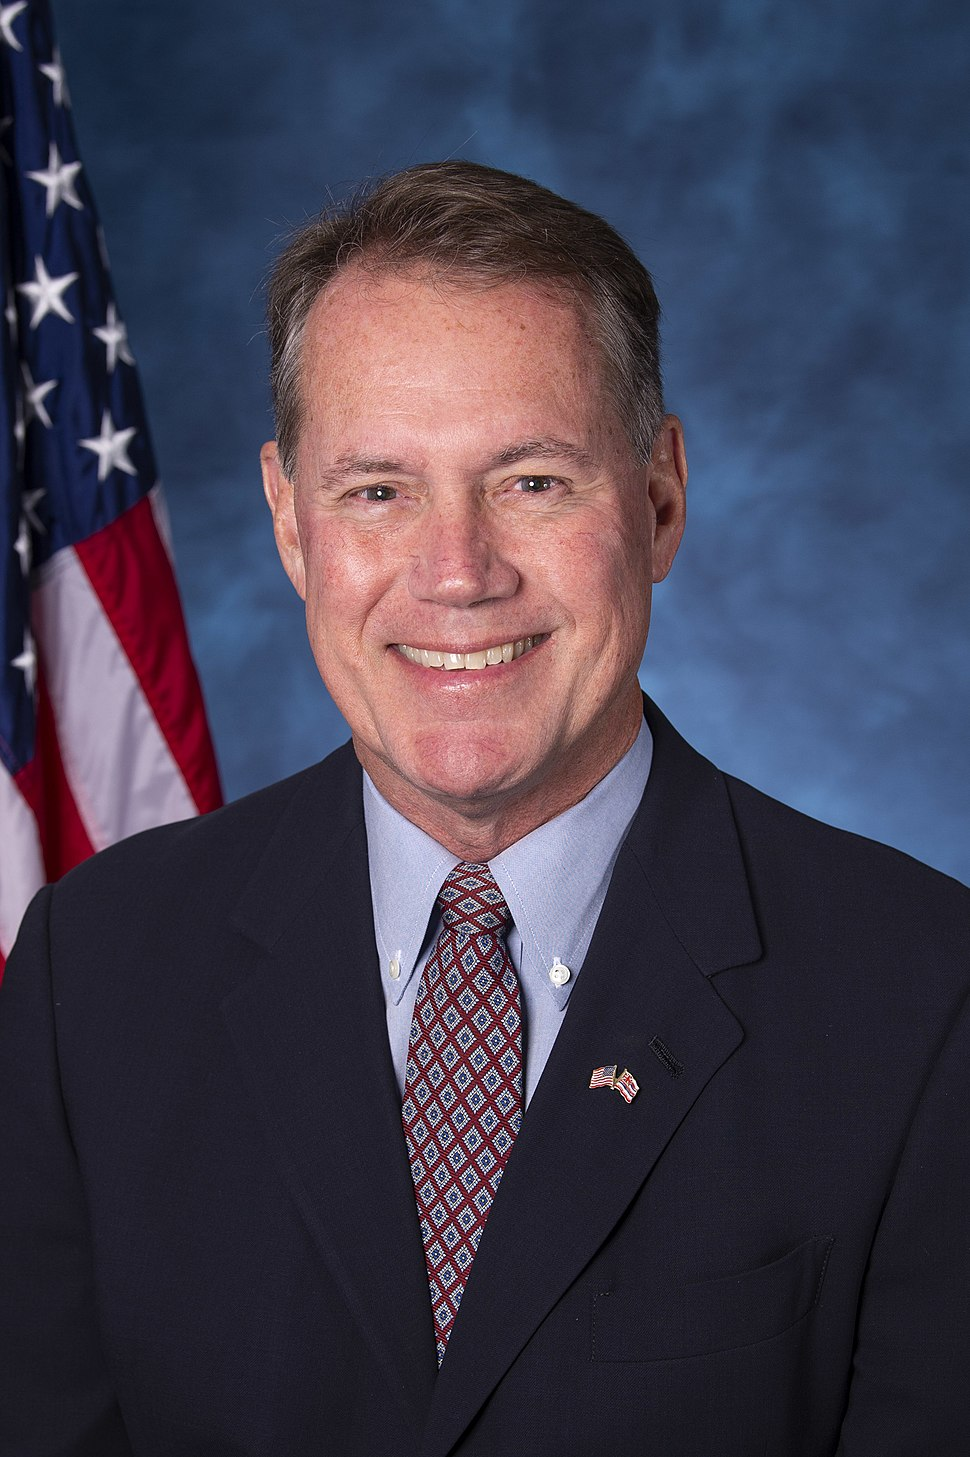 Ed Case, official portrait, 116th Congress